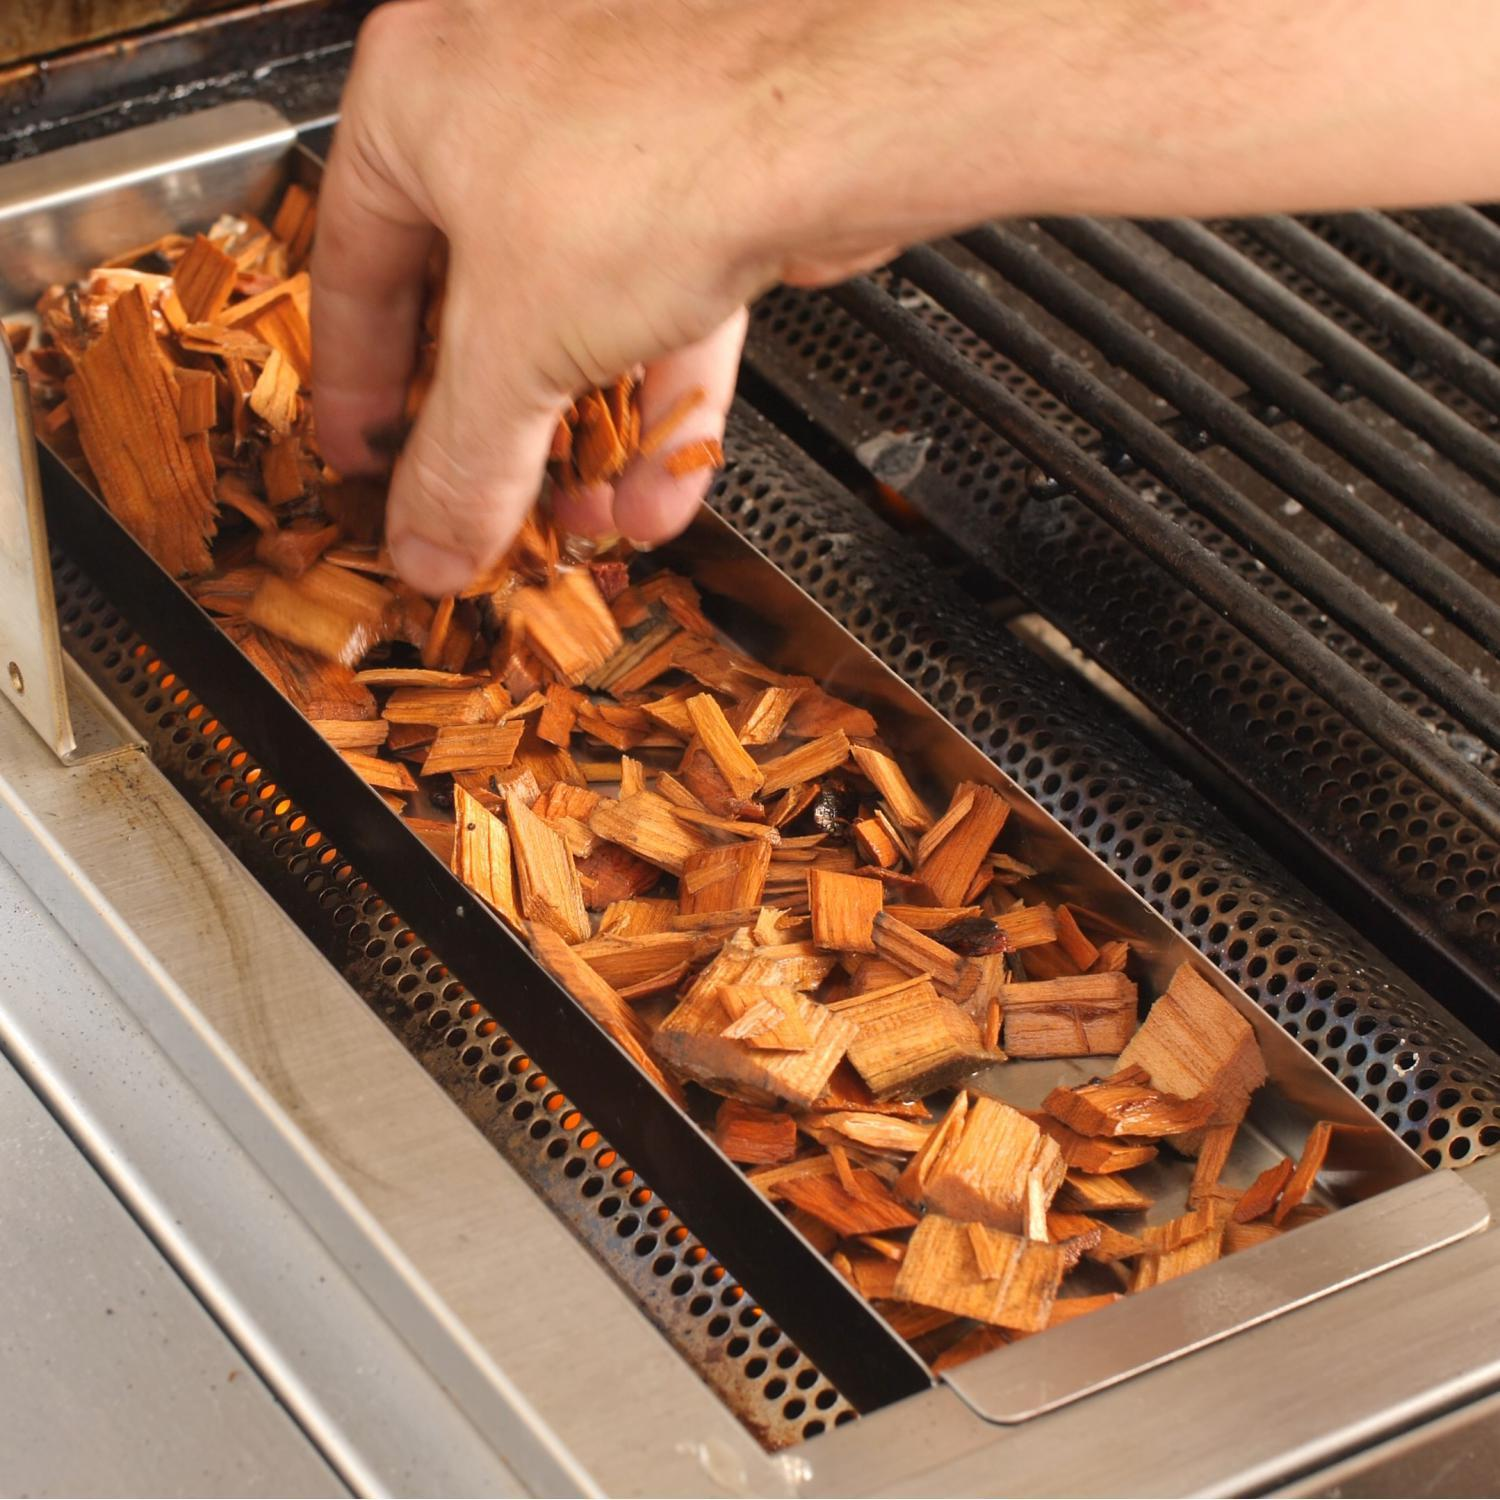 Smoker box on outdoor stainless steel grill